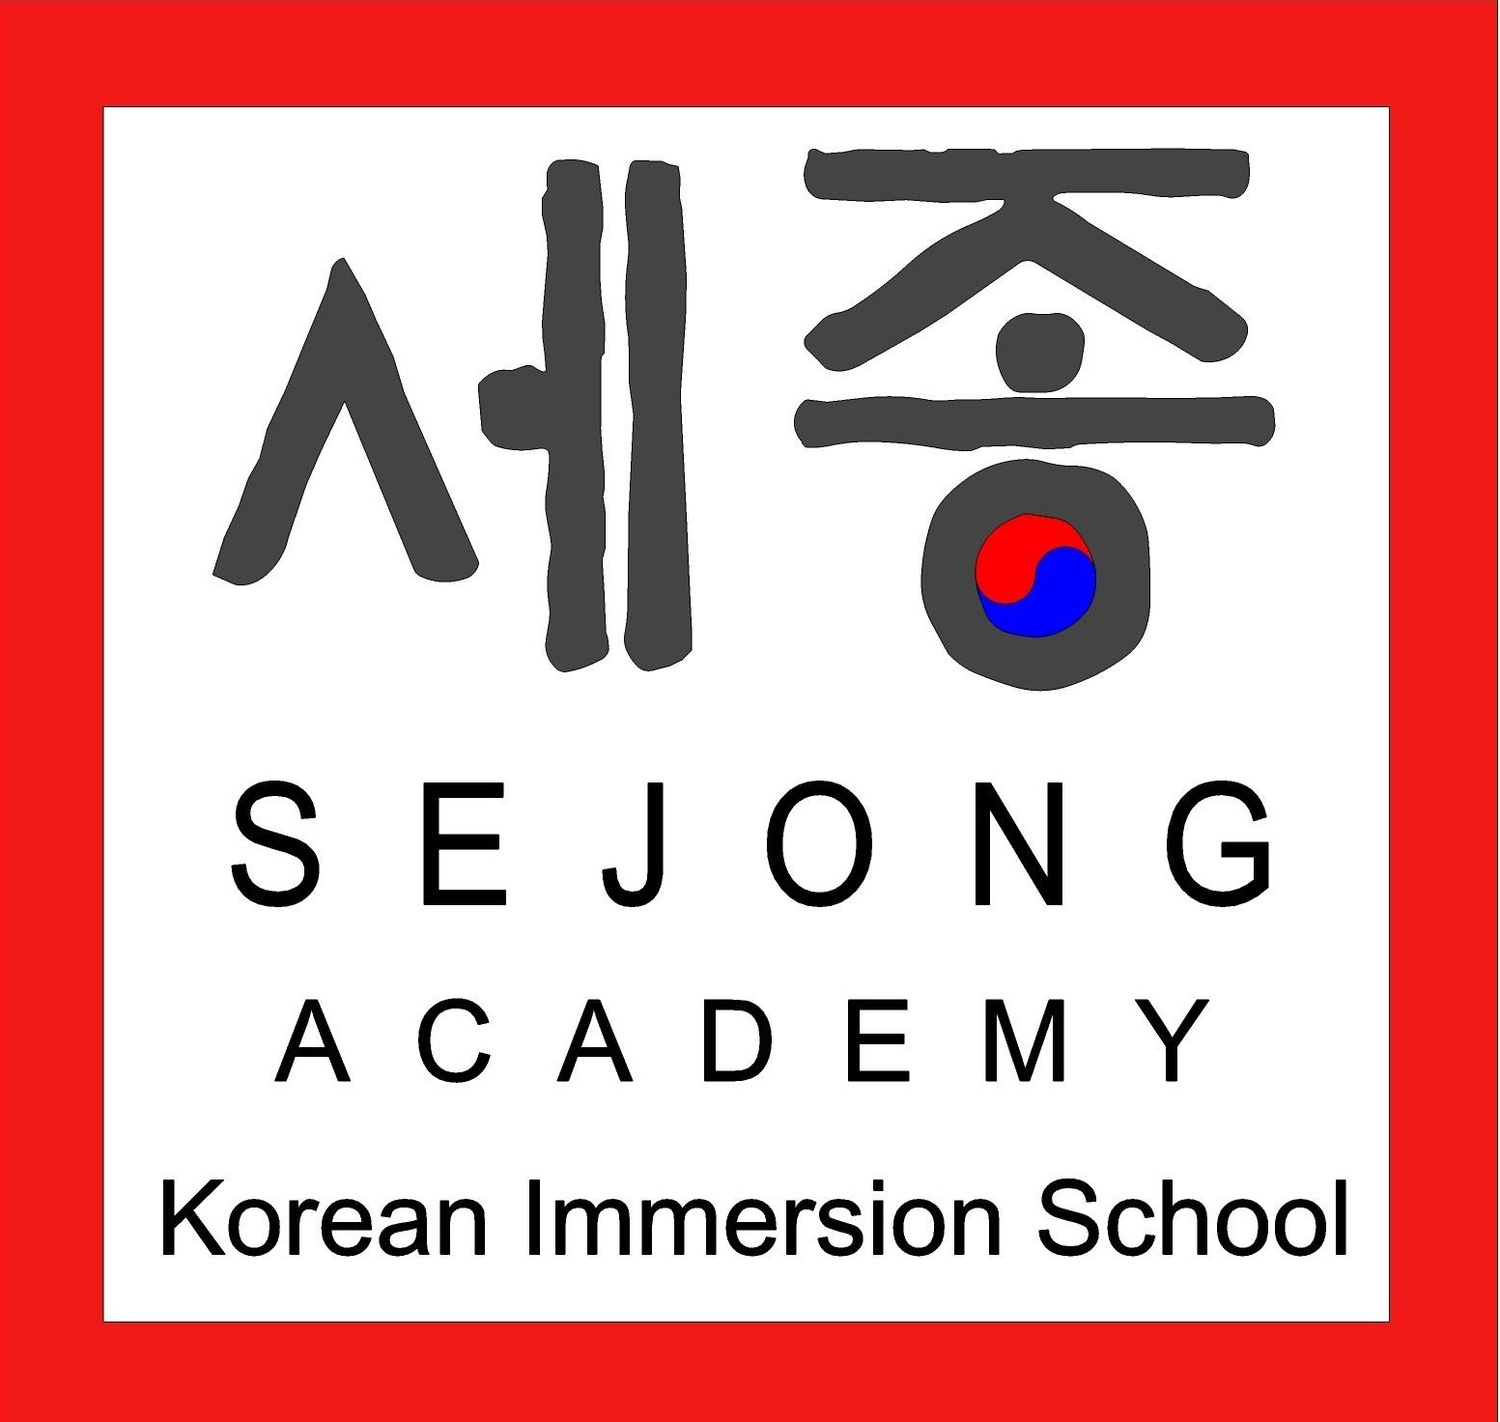 Sejong Academy: A Tuition-FREE Korean Immersion Charter School